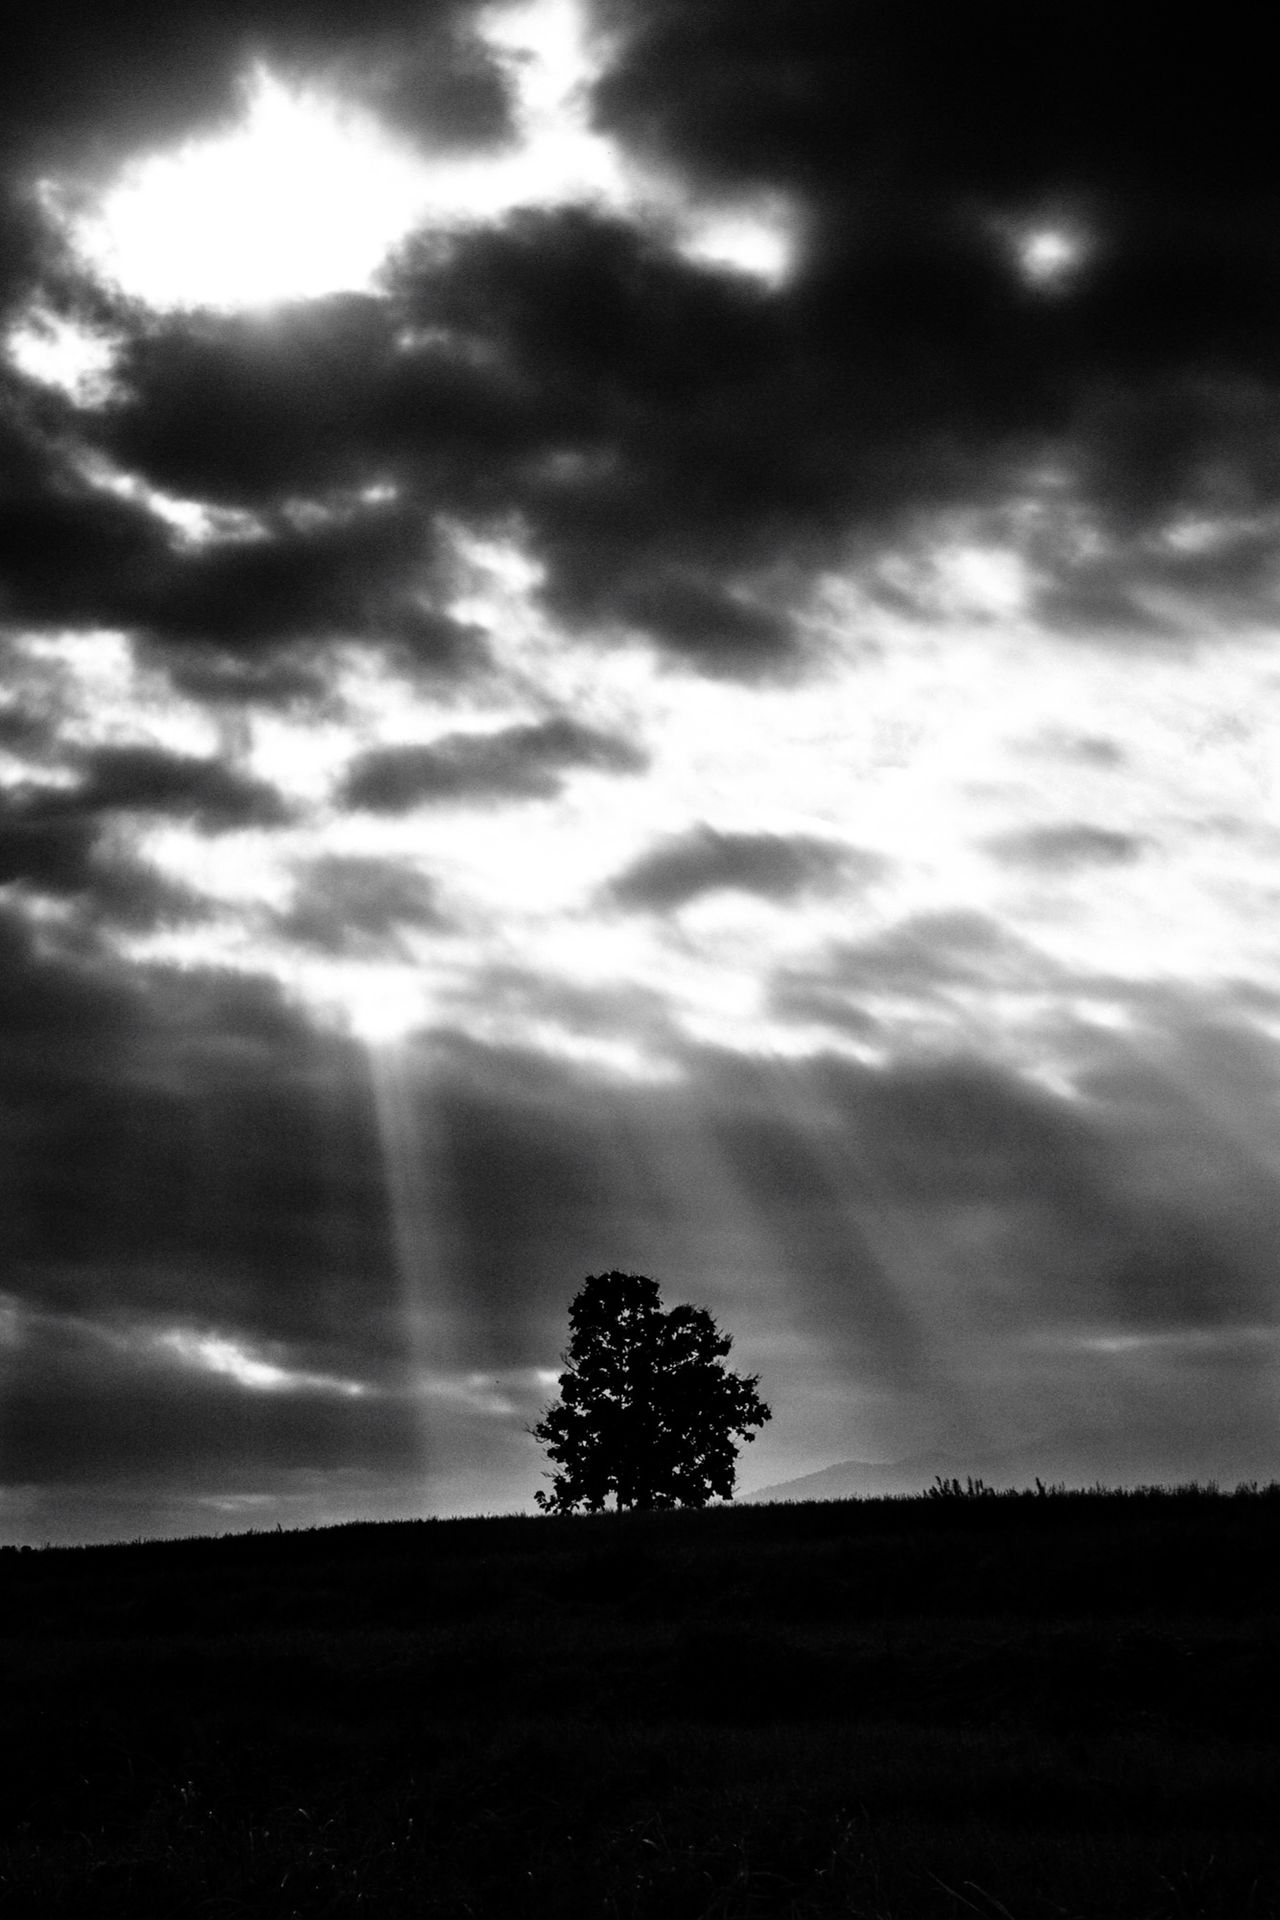 Silhouette tree growing on field against sky